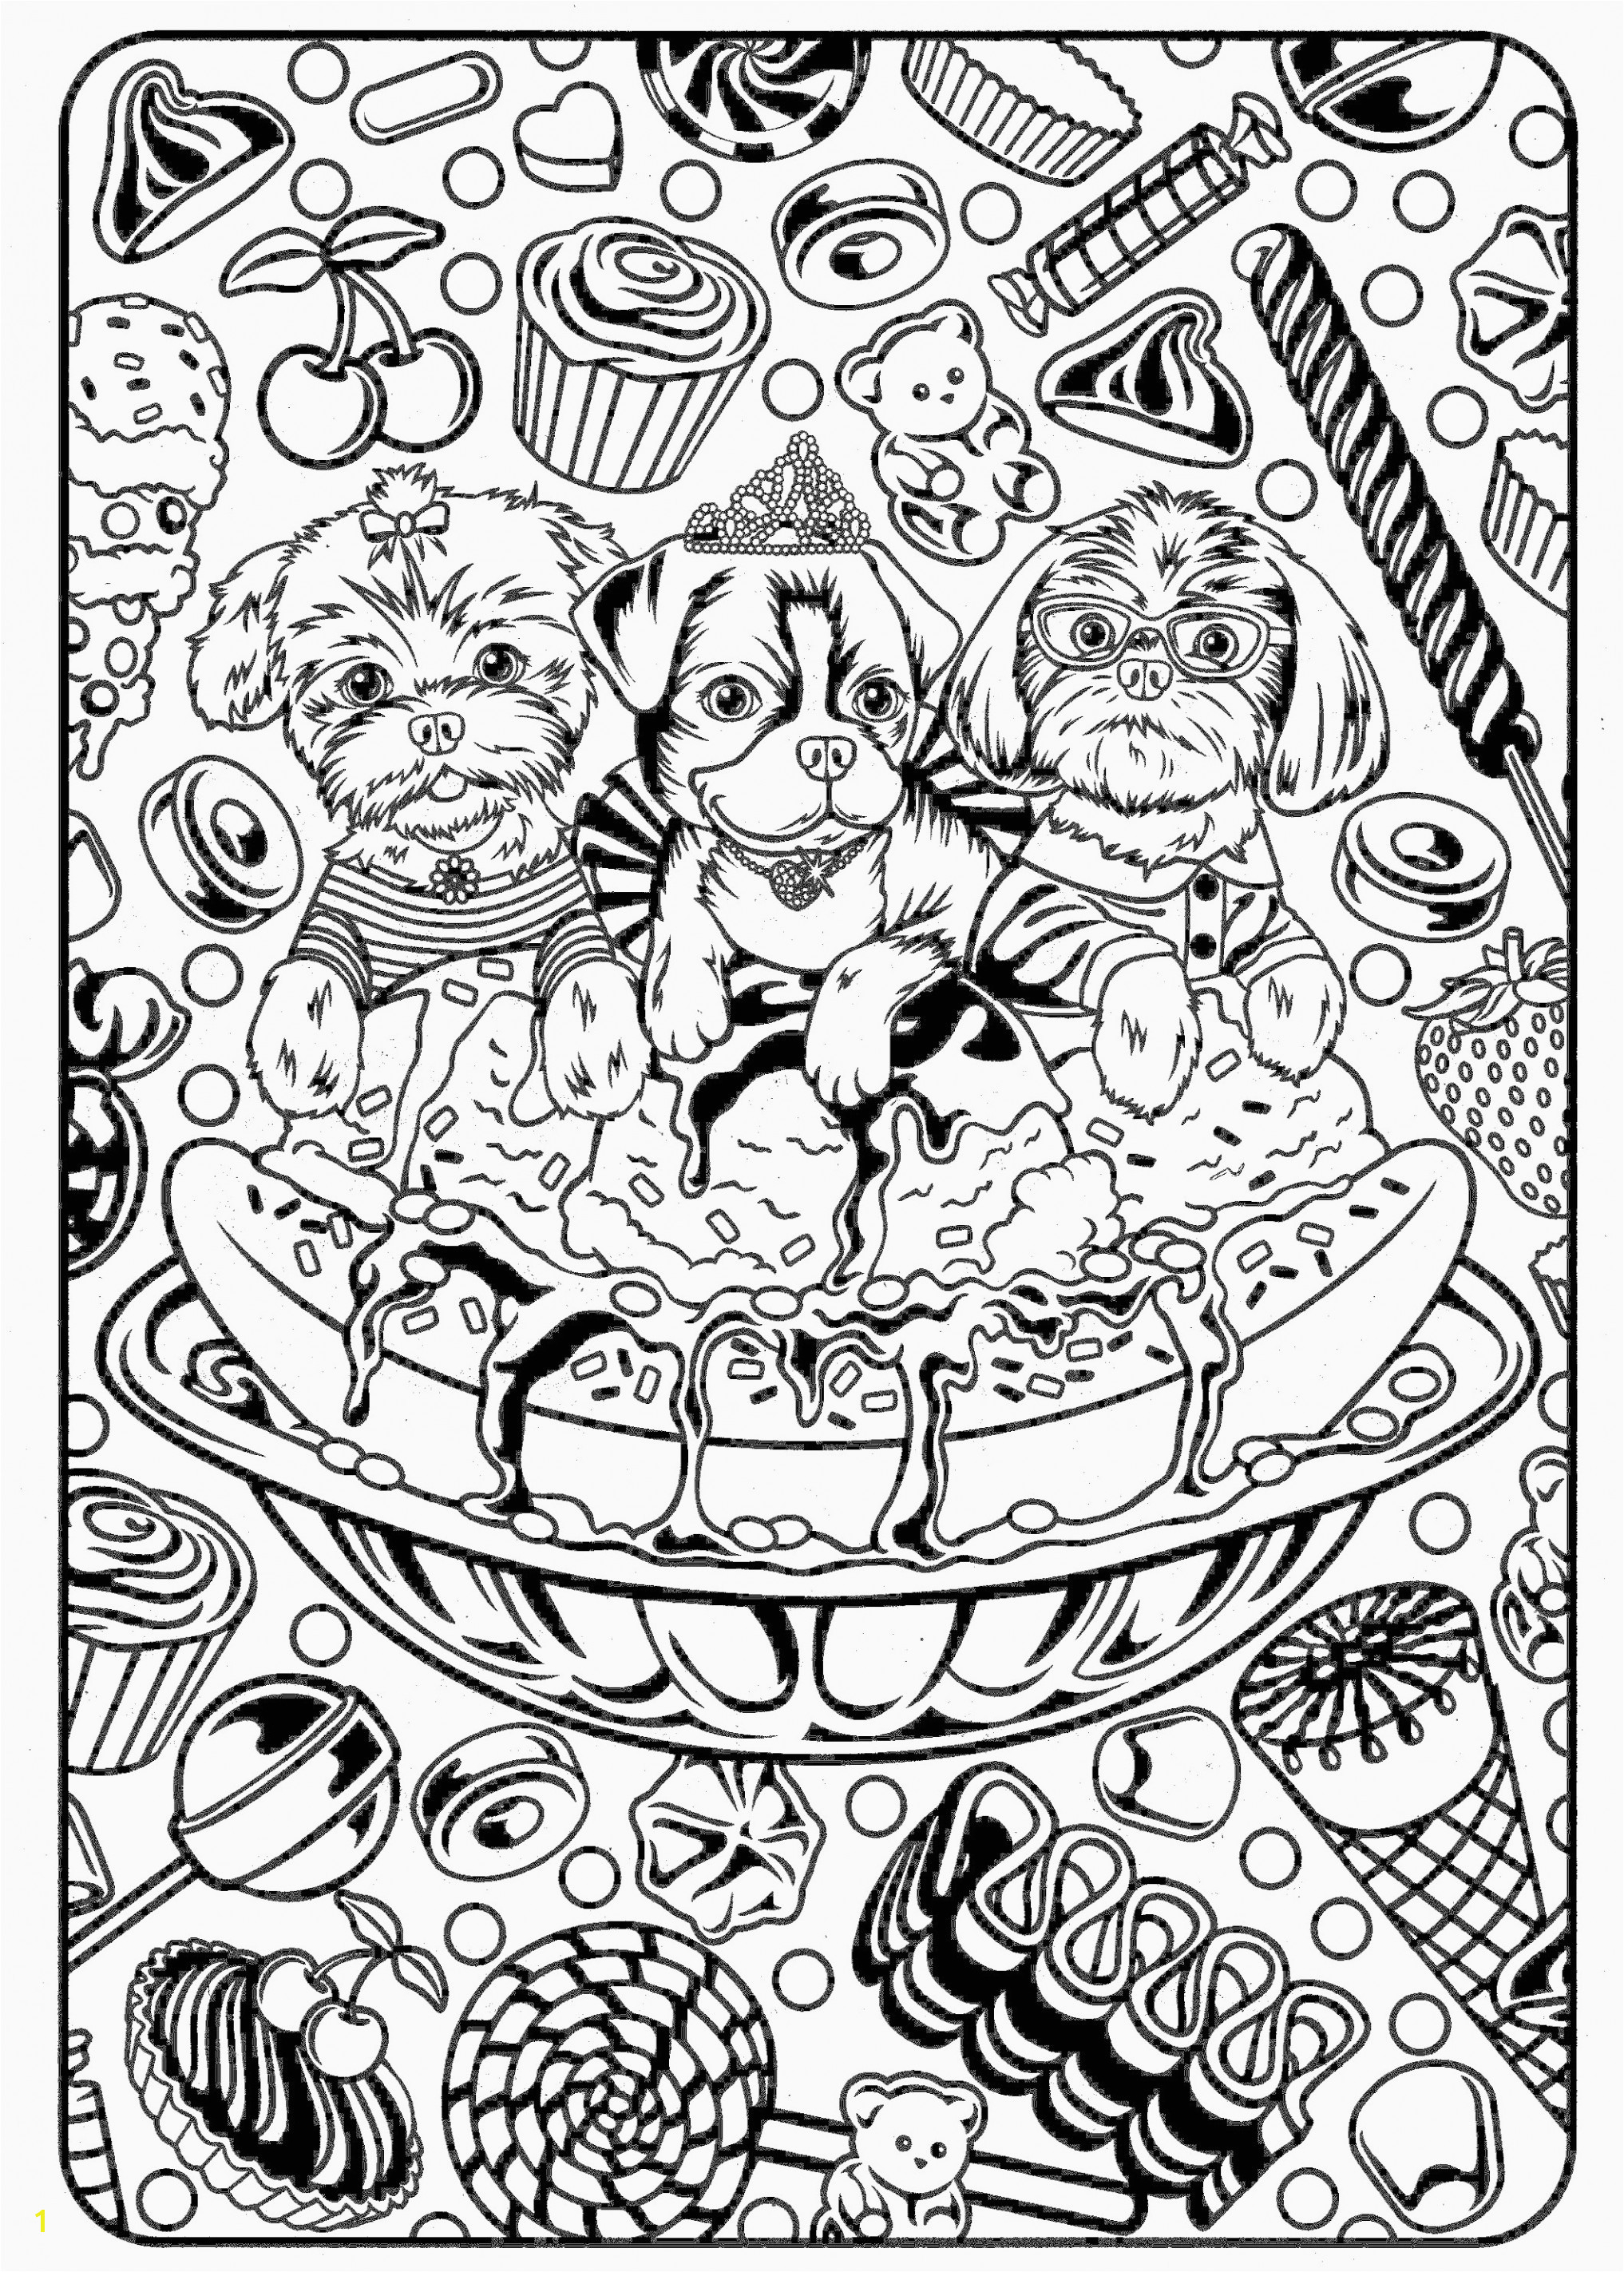 Halloween Coloring Pages Printable Disney Halloween Coloring Pages Printable Zabelyesayan